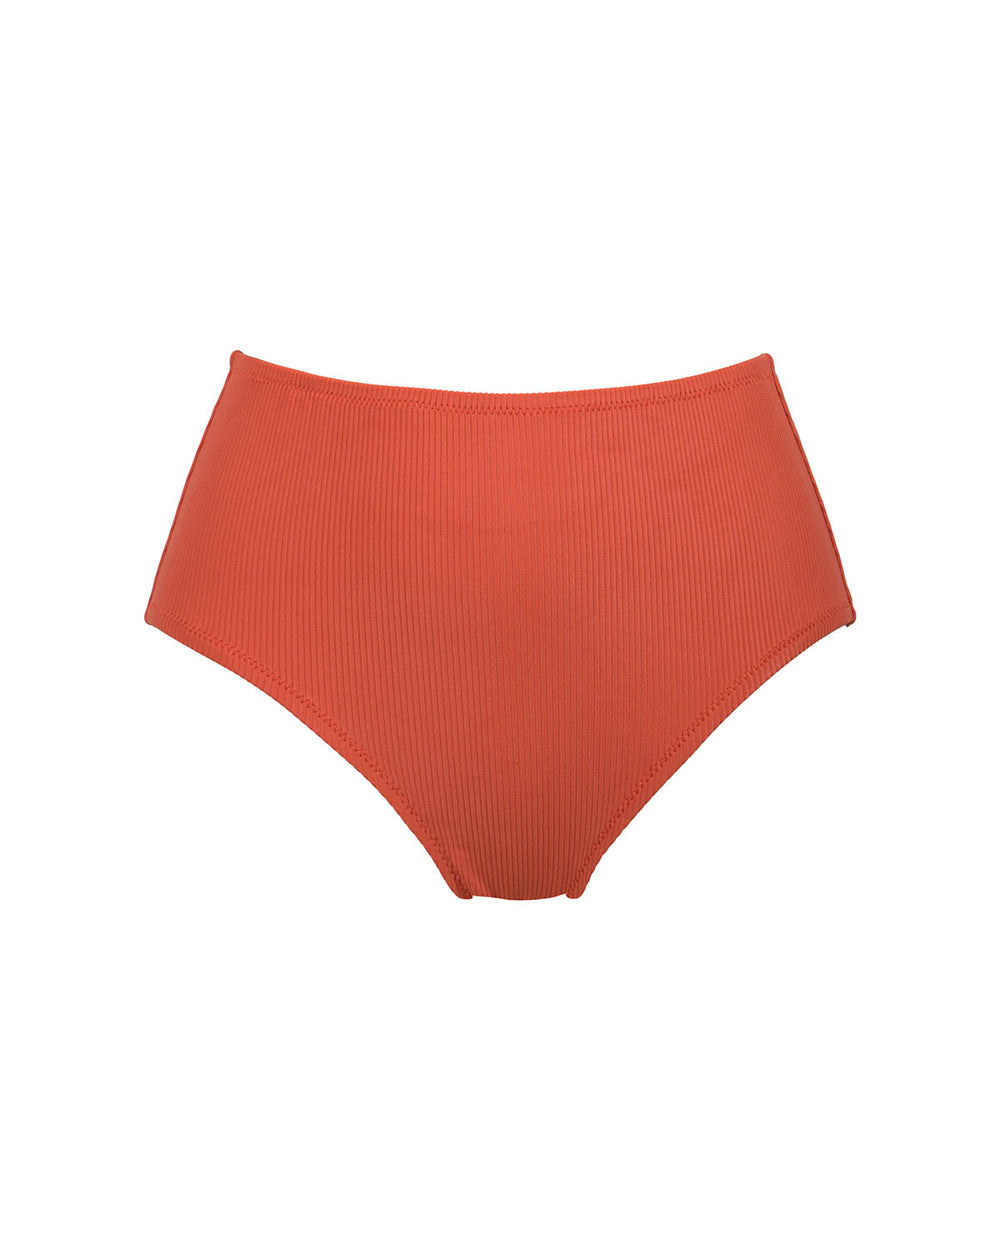 Westwood Bottom - Burnt Orange Rib - Static Swimwear - Modern Minimalist Bikinis - Made in Los Angeles